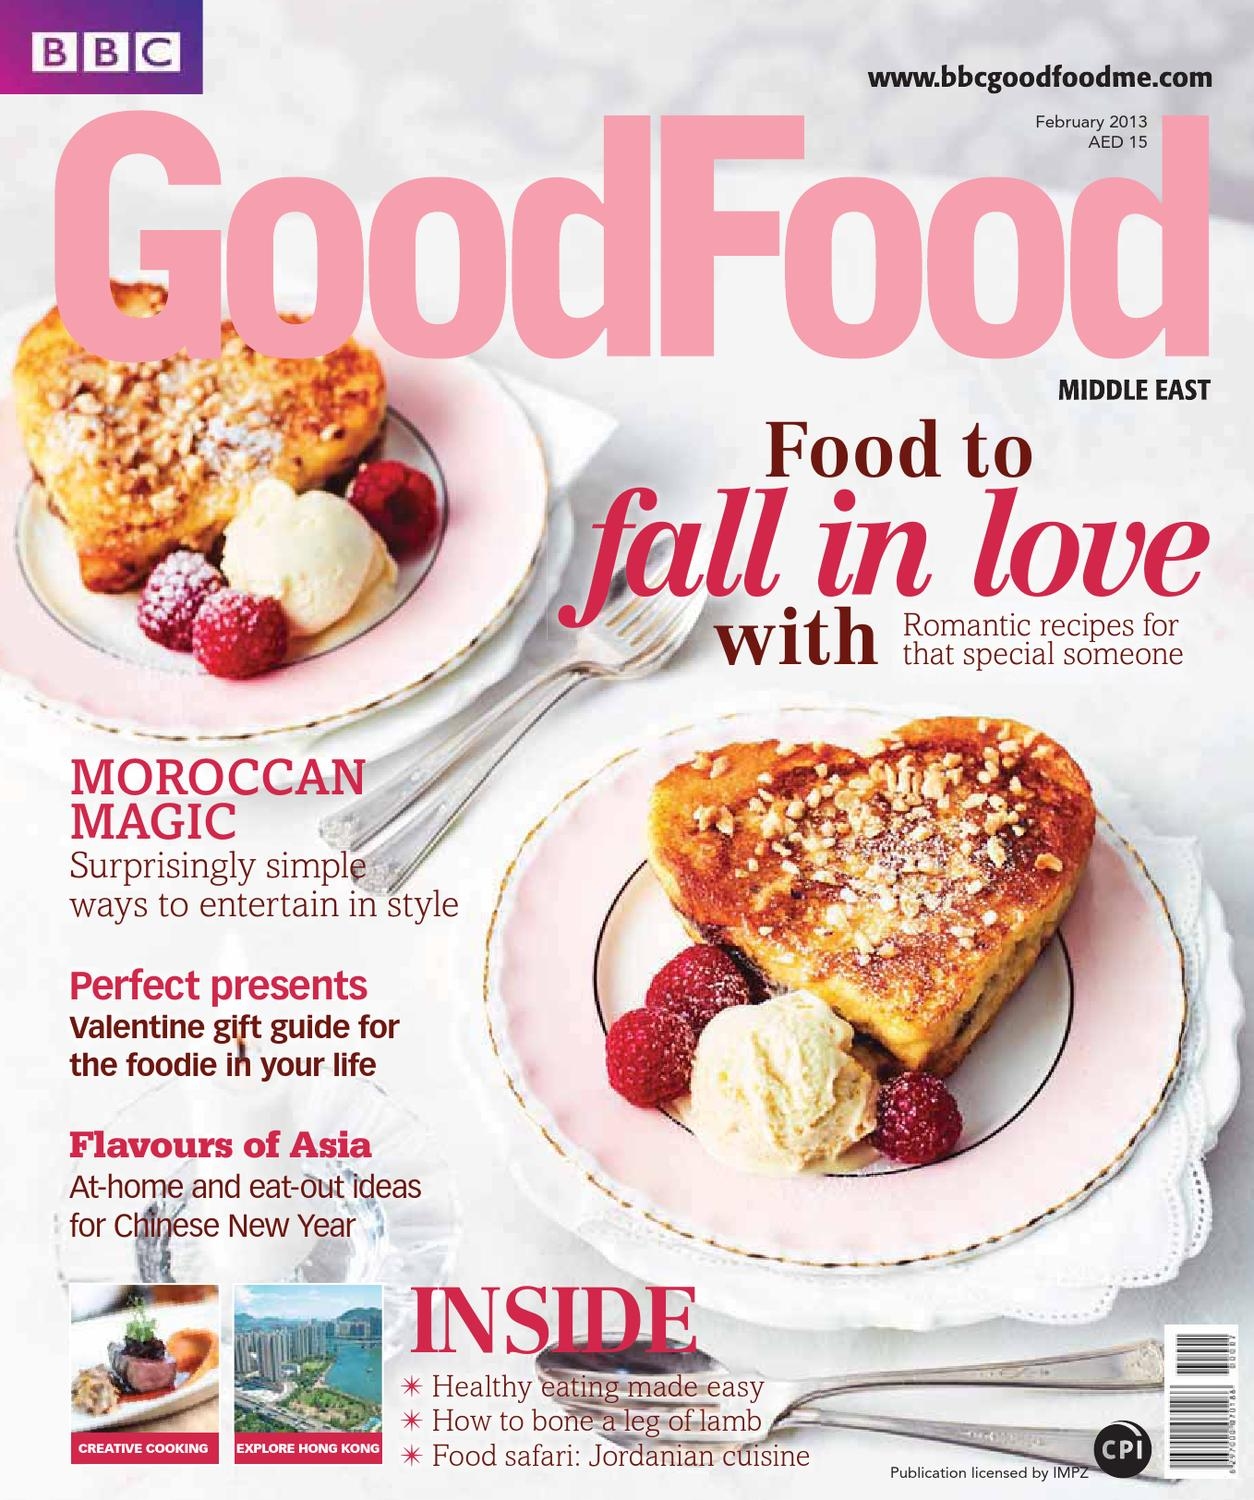 Bbc good food middle east magazine february 2013 by bbc good food bbc good food middle east magazine february 2013 by bbc good food me issuu forumfinder